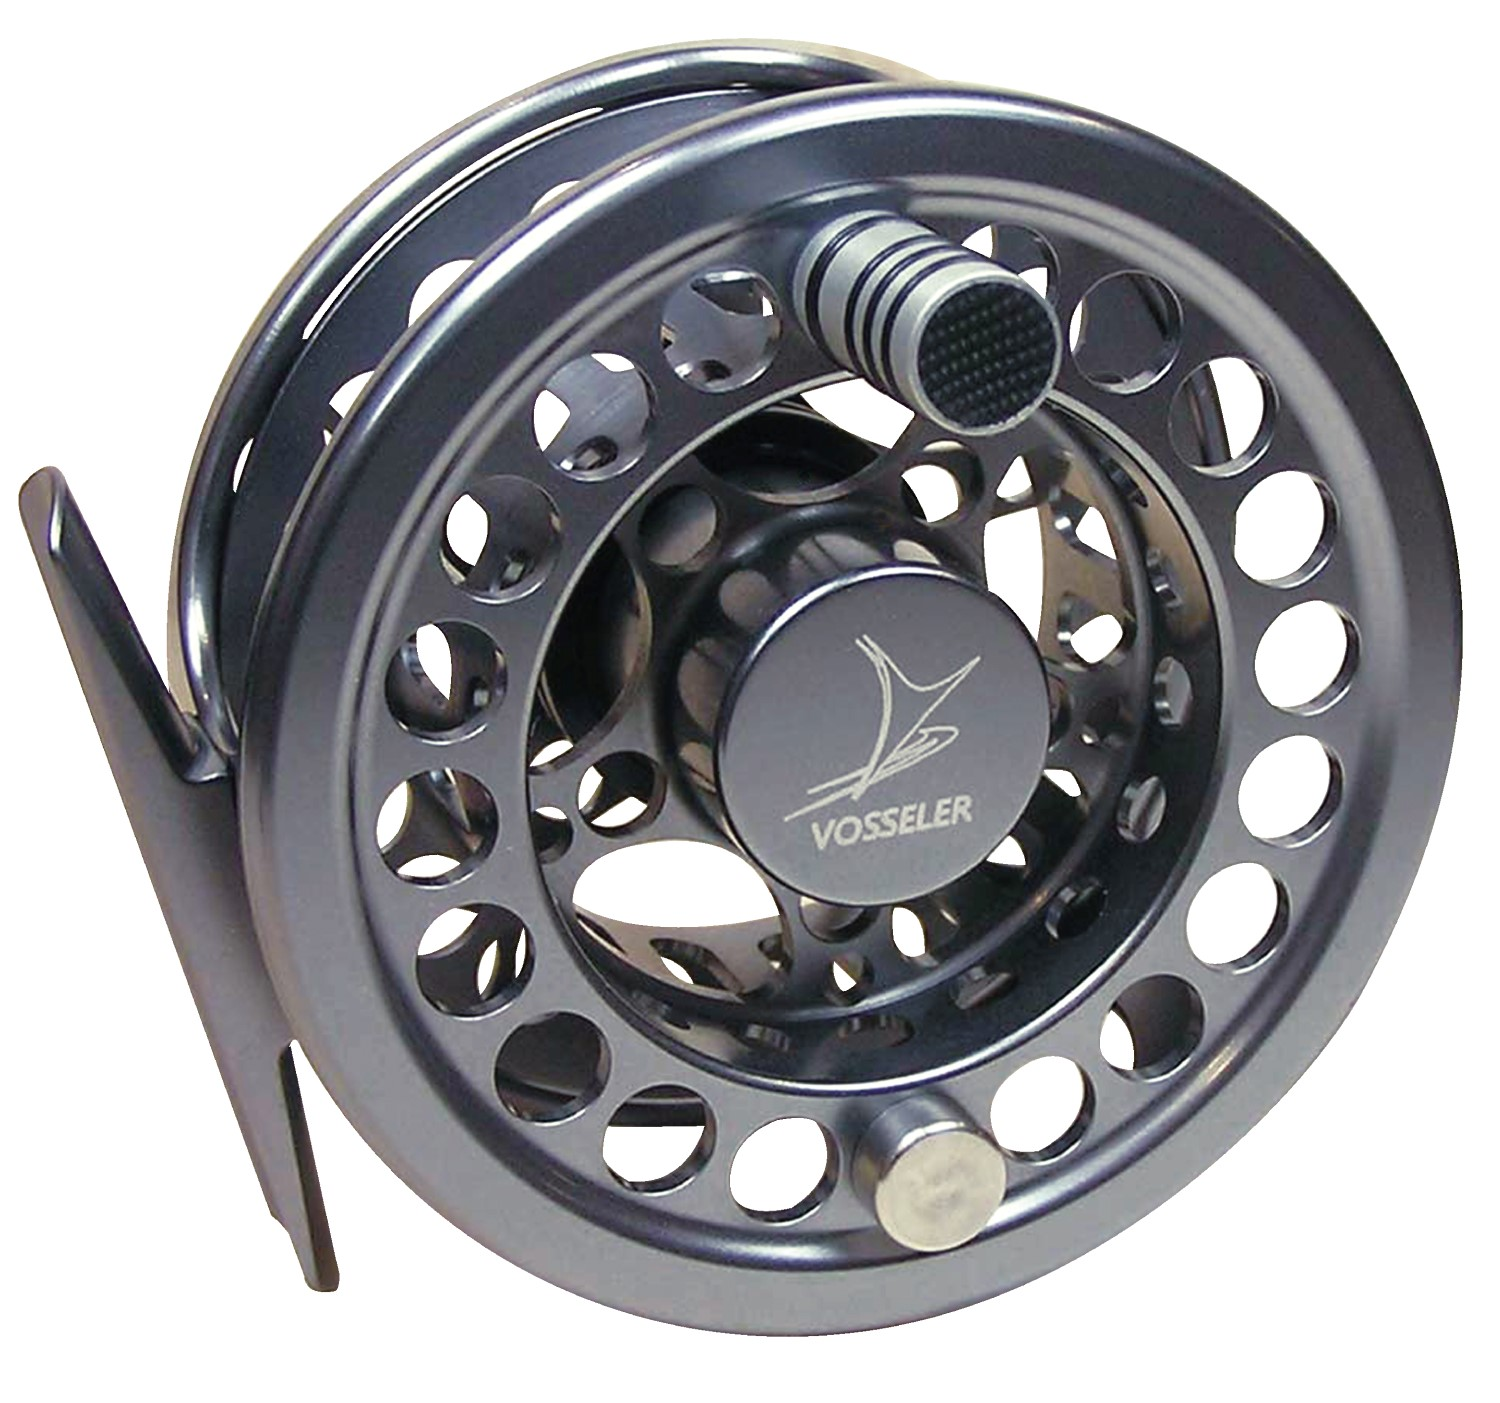 VOSSELER DC2 3/4 REEL-BLACK